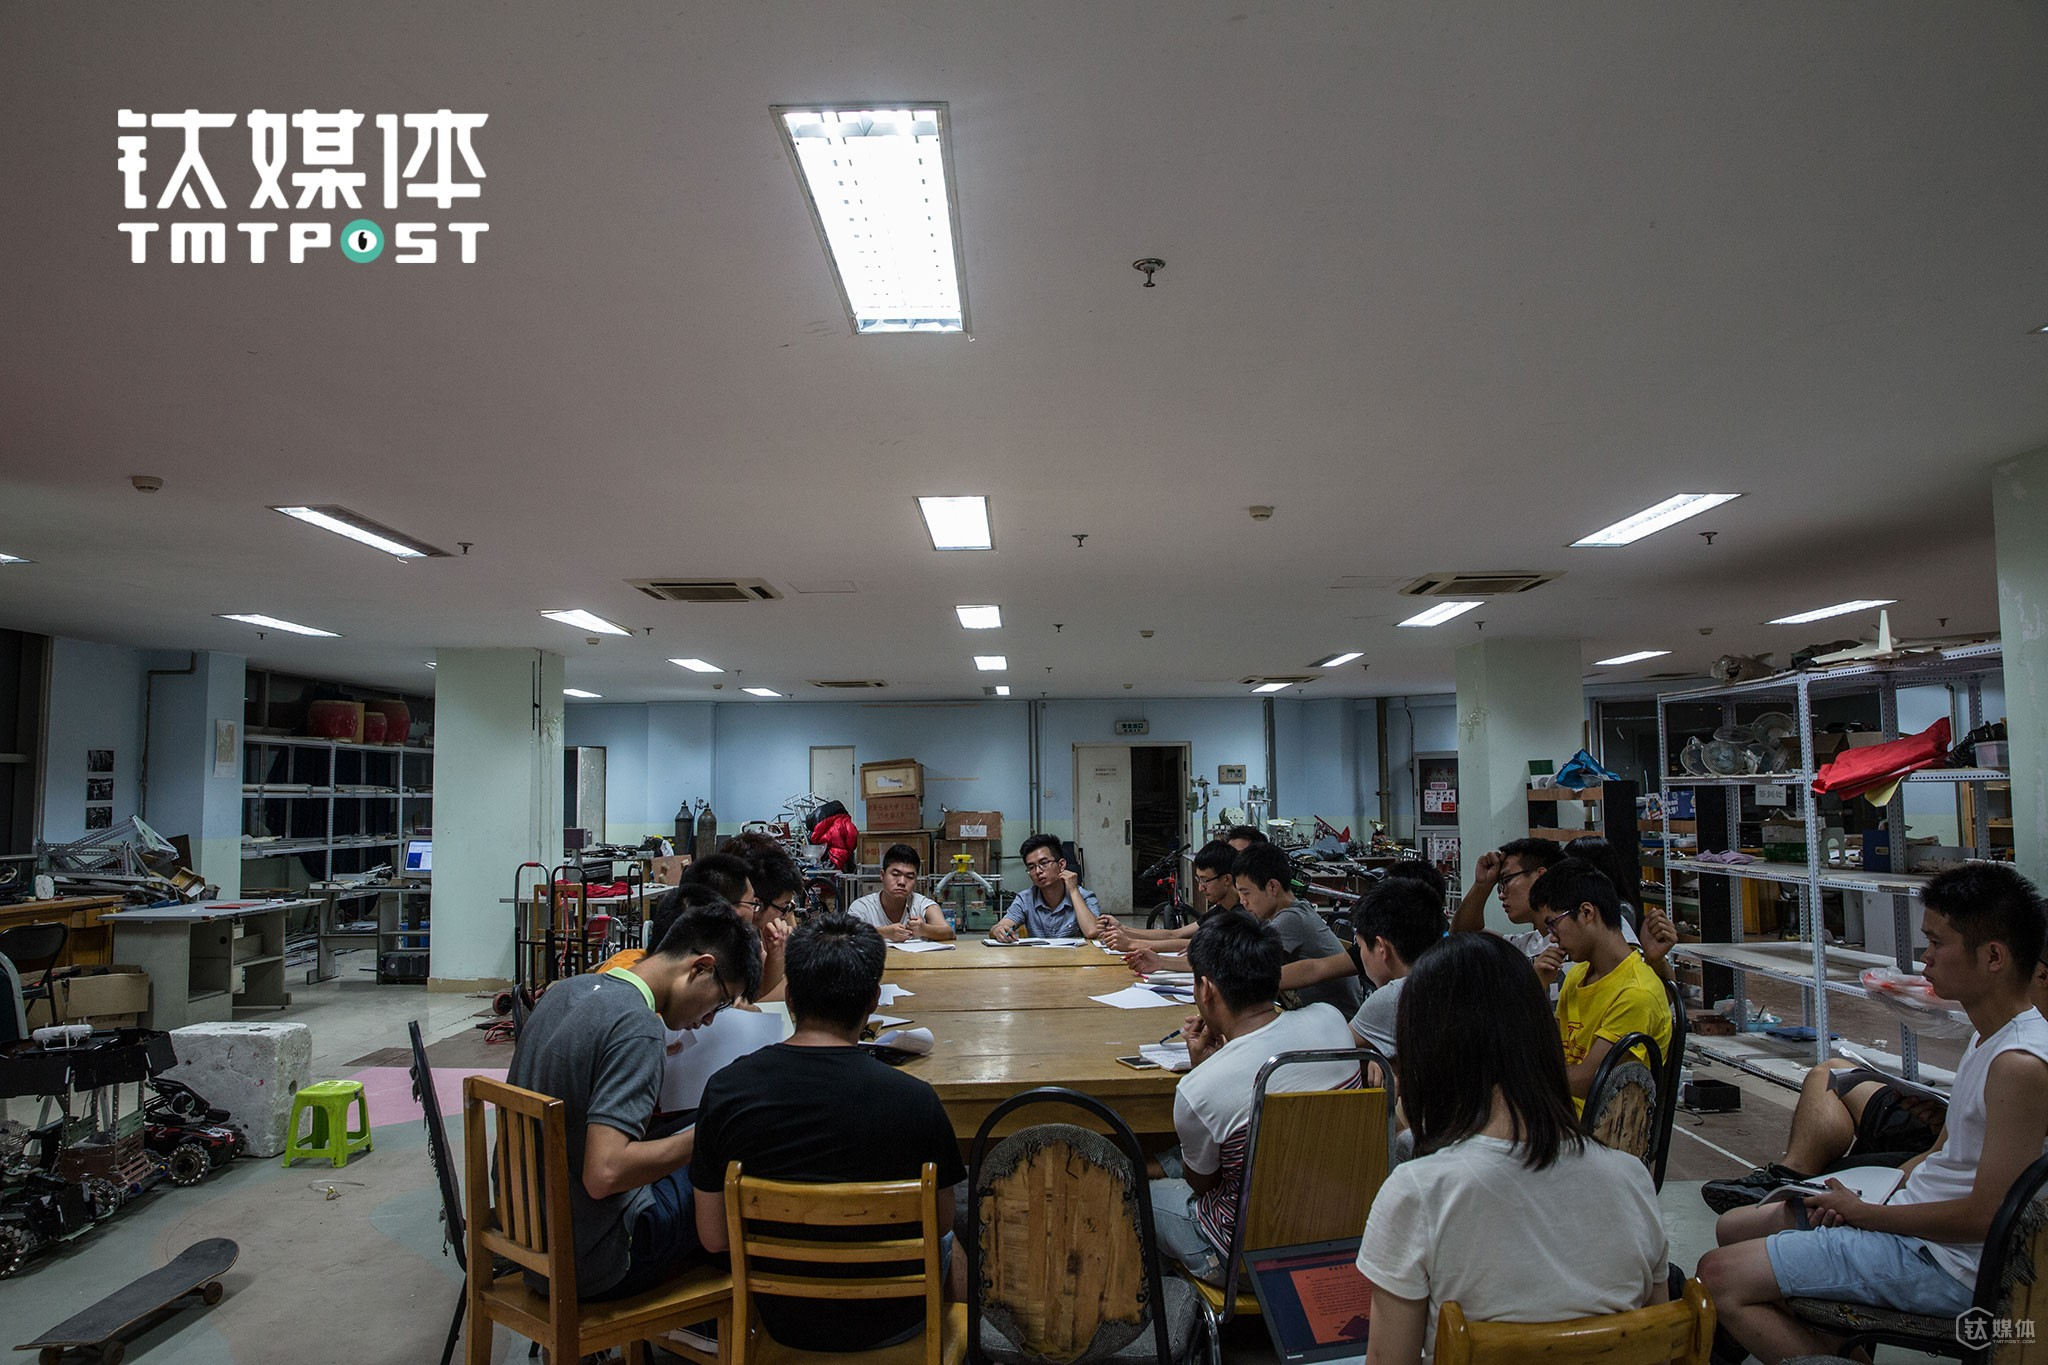 On September, 17th, the theme and rules of the 16th National Robocon Robot Competition were released. After receiving all the related materials, SPR team members got together and discuss their coping strategies and development focus. The competition was to be held in eight to ten months later.